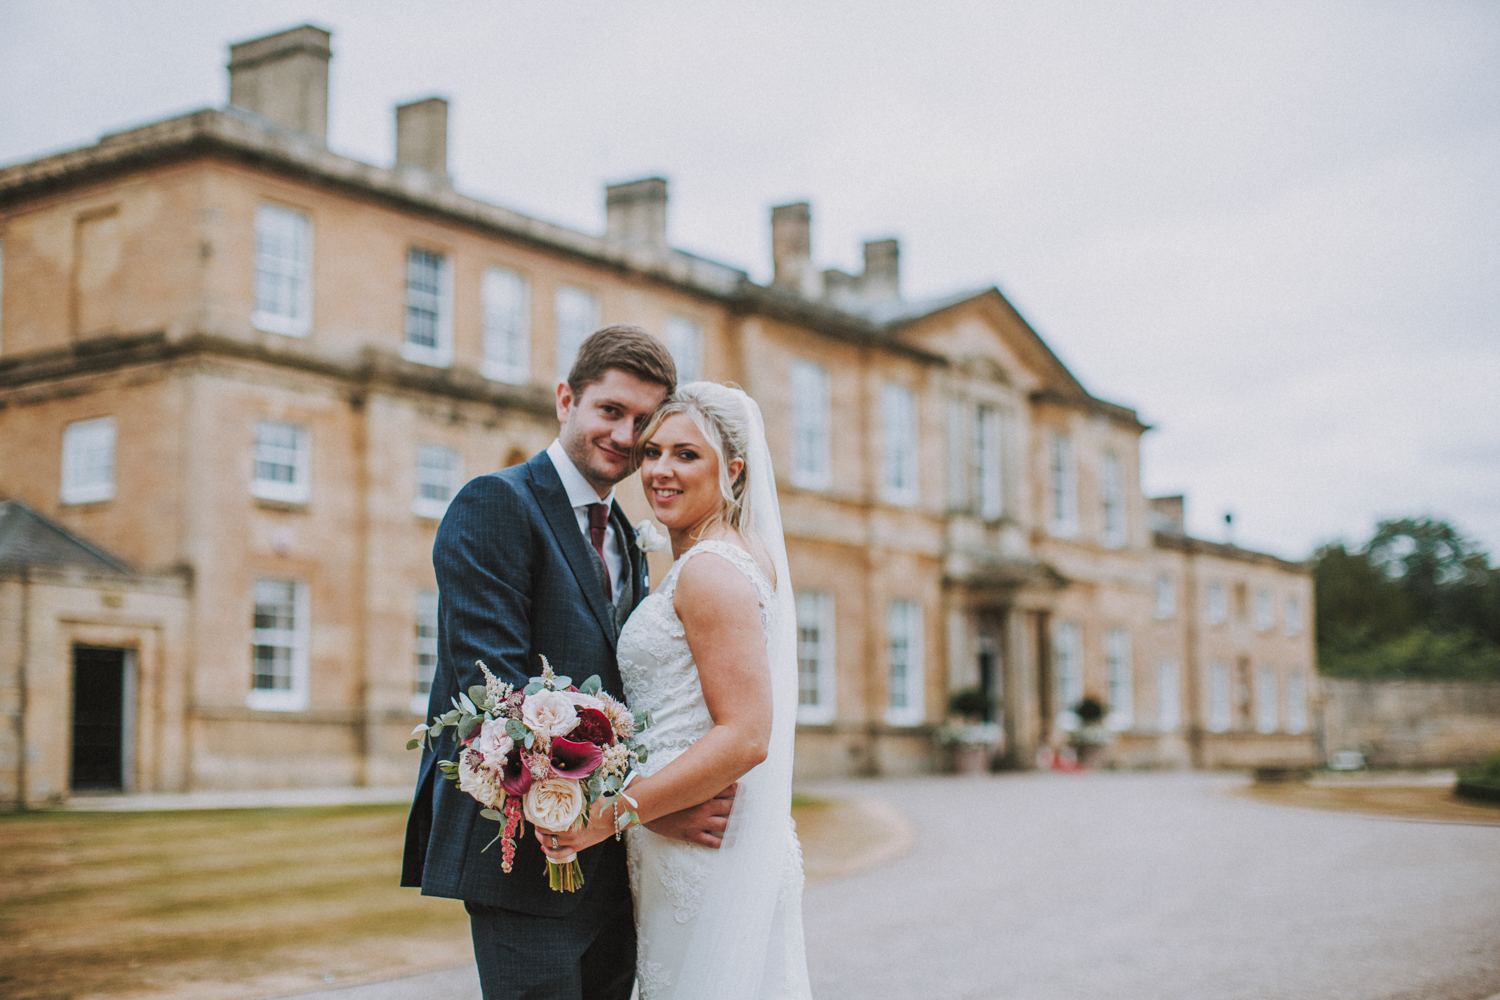 bowcliffe hall, wetherby, yorkshire wedding photography17.jpg